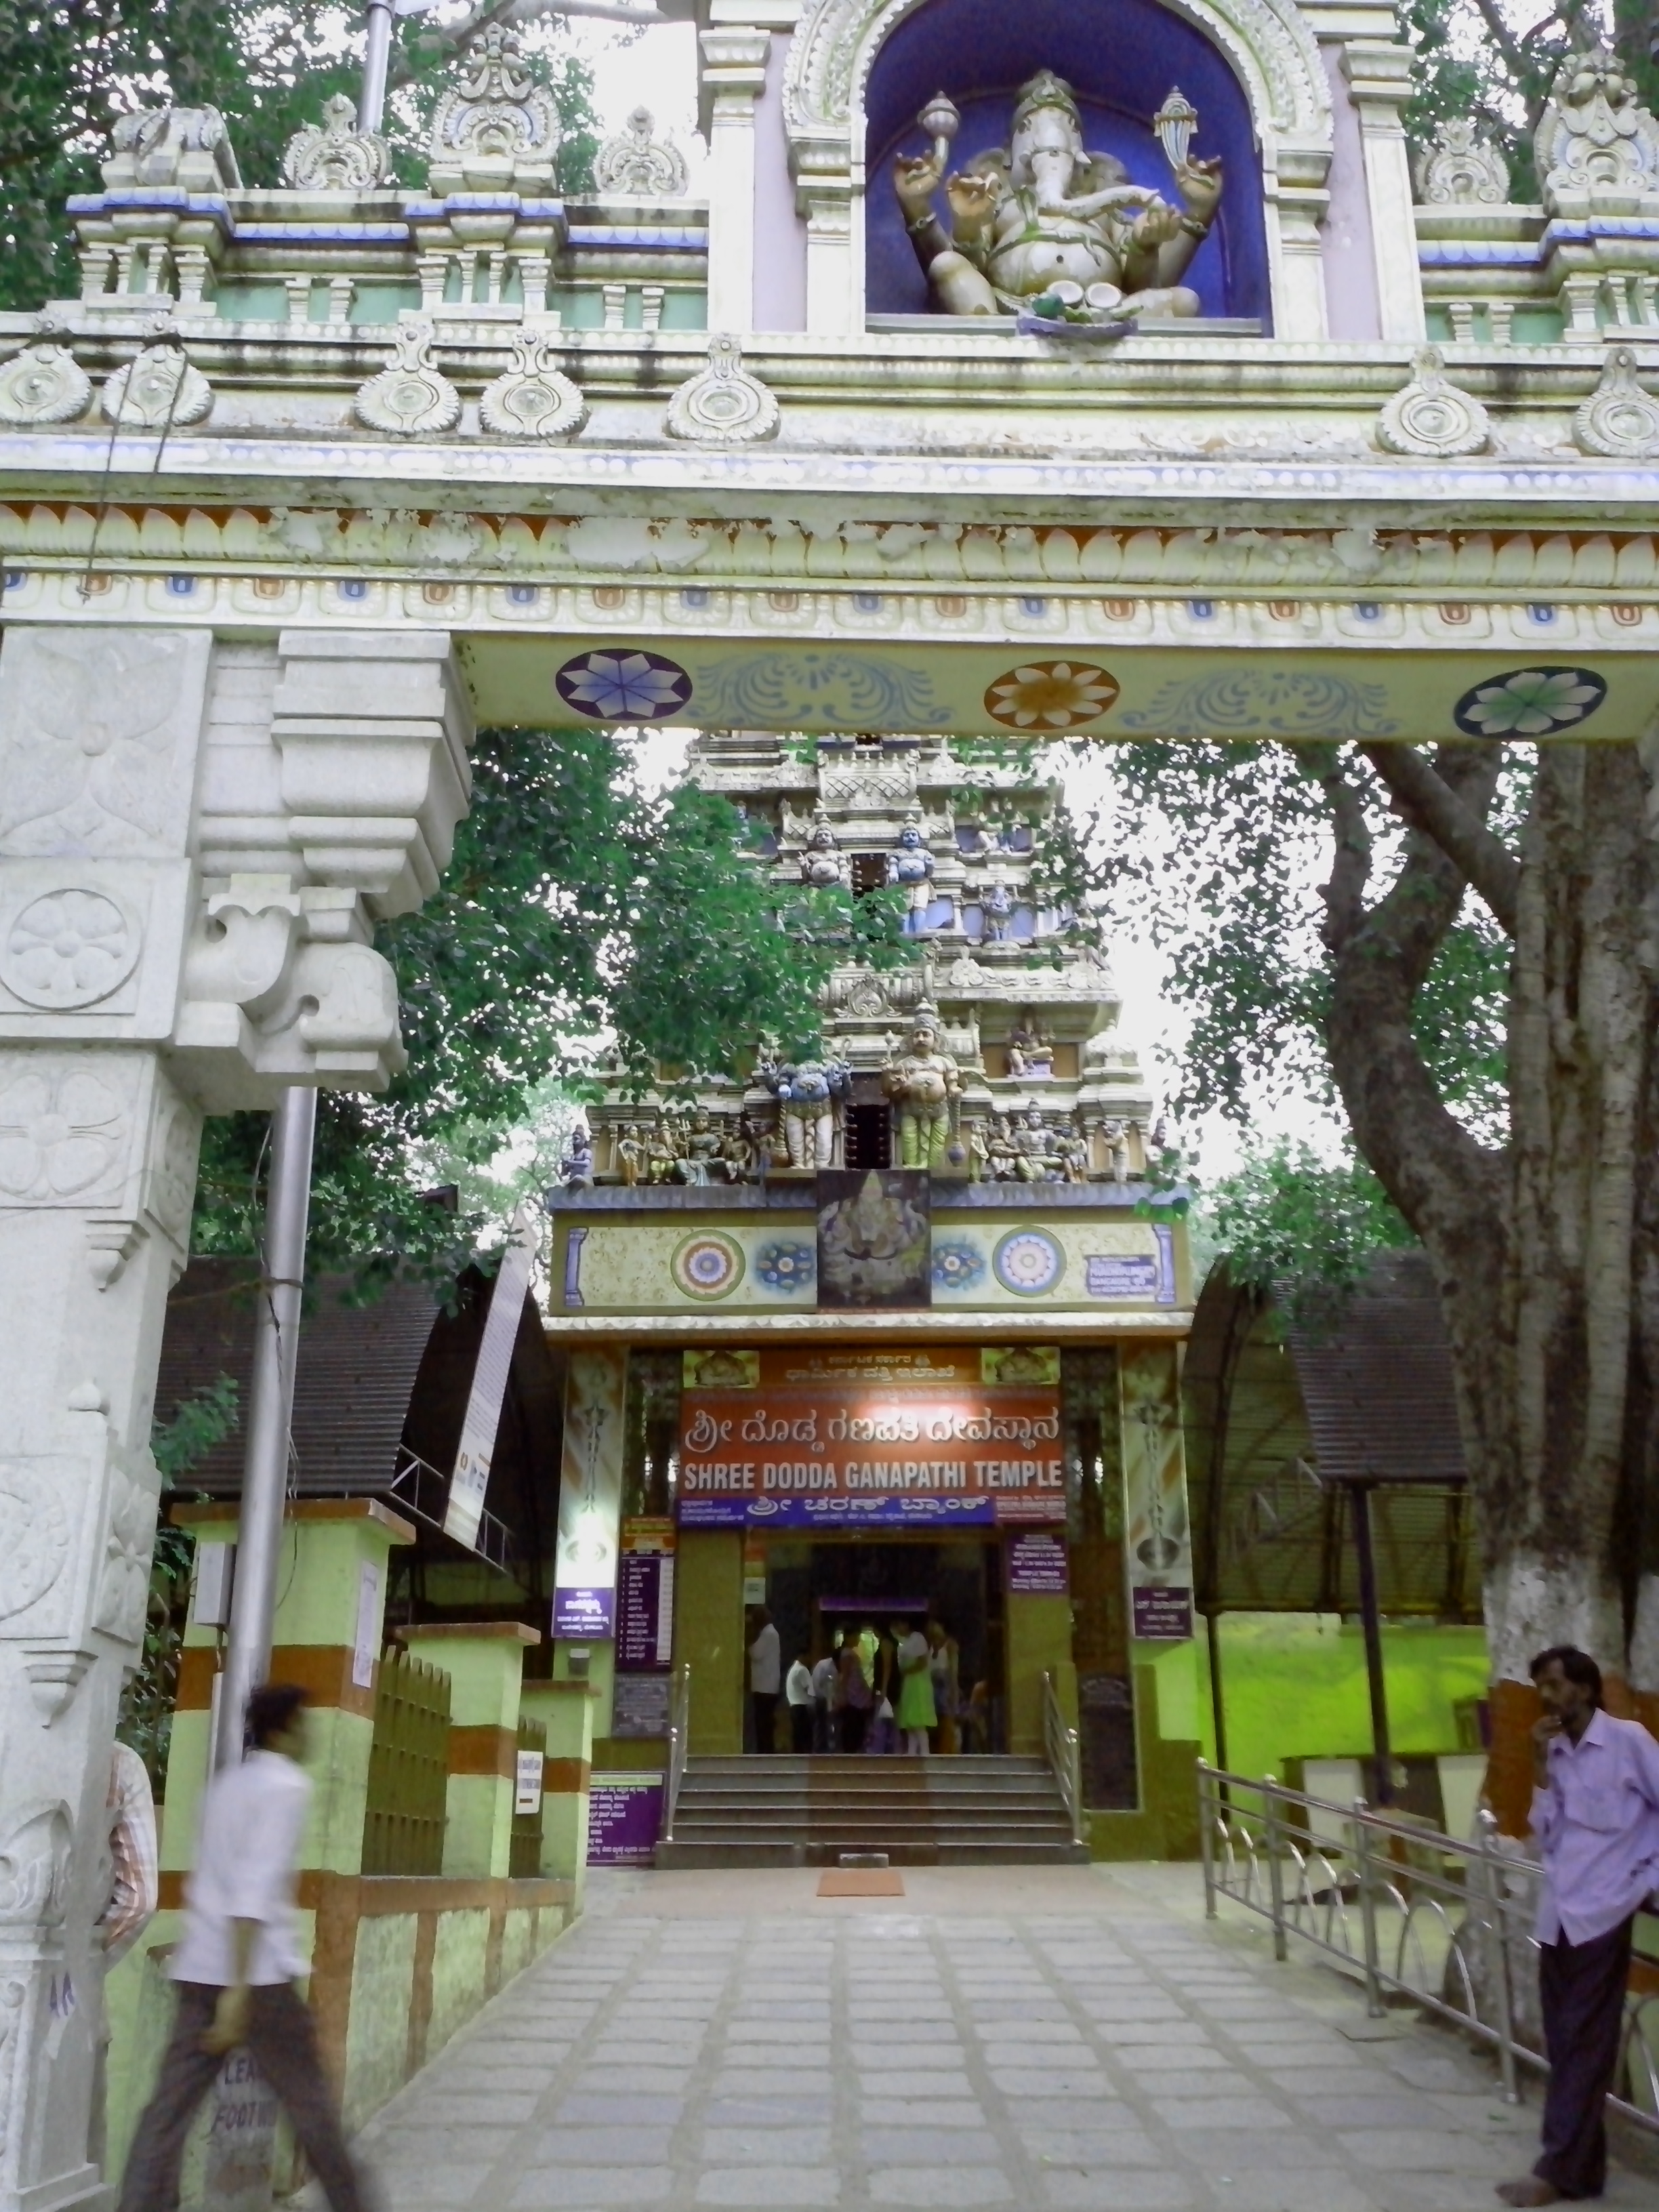 Shree Dodda Ganapathi Temple